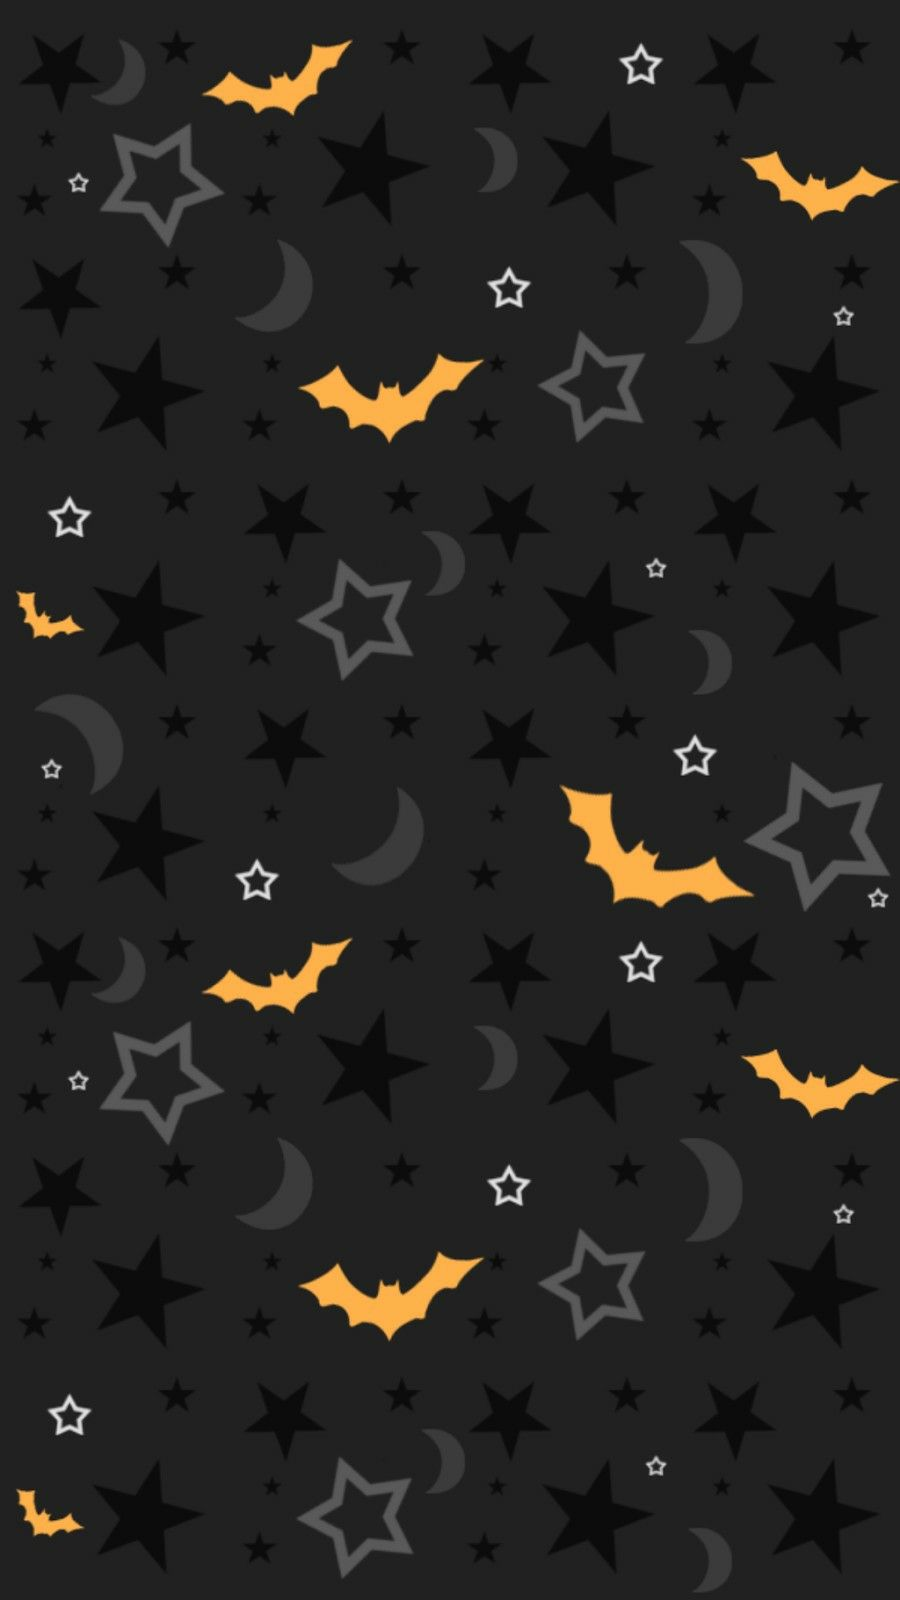 Pusheen Fall Wallpaper Halloween Iphone Wallpaper Halloween Wallpaper Iphone